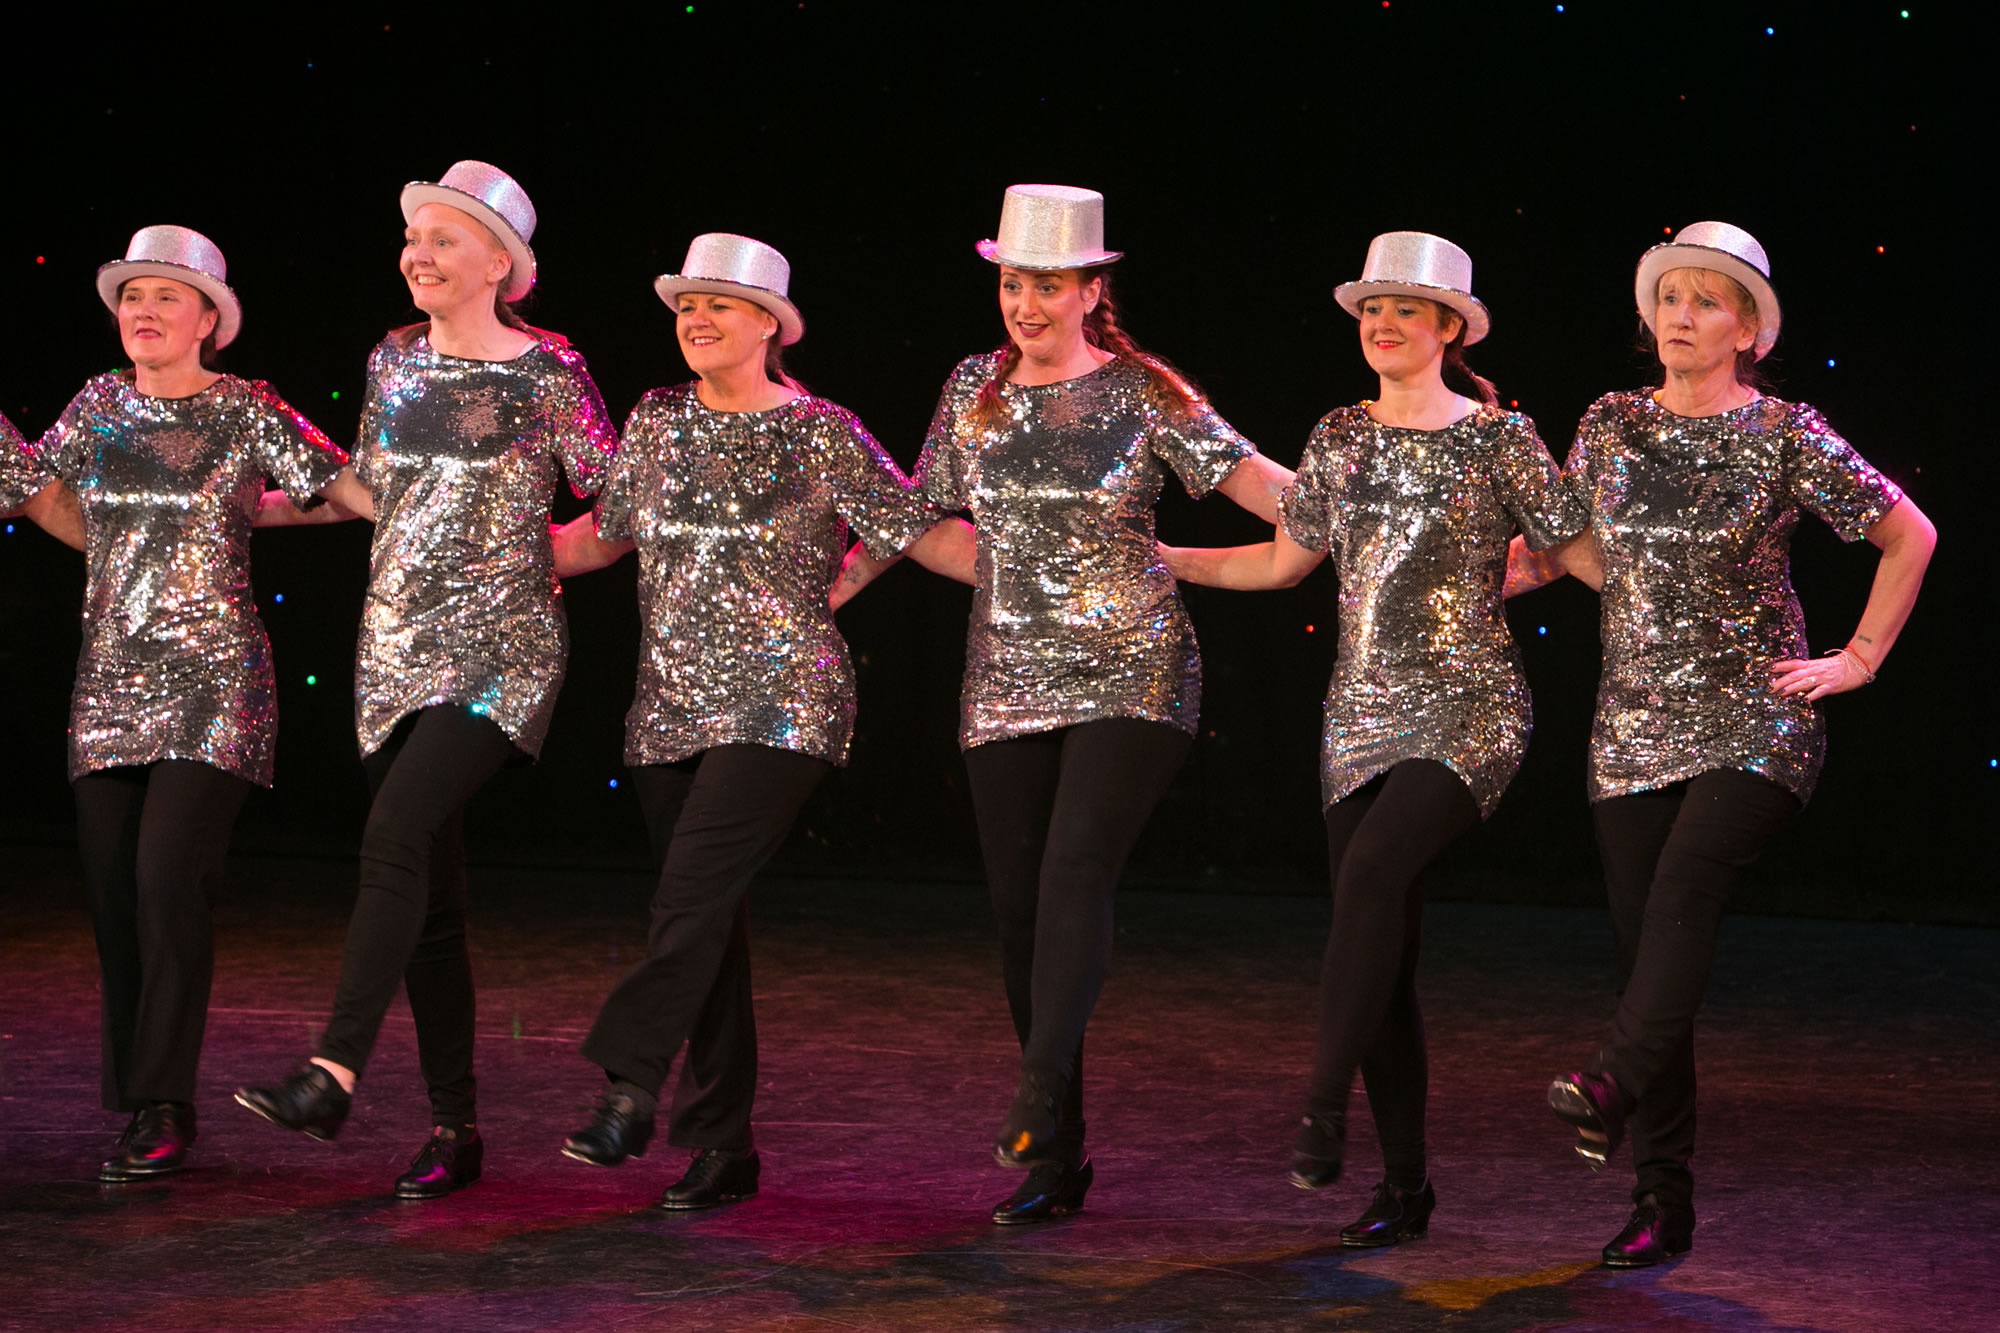 Hitchin_School_of_Dance_Show_2019-SM1_2986.jpg